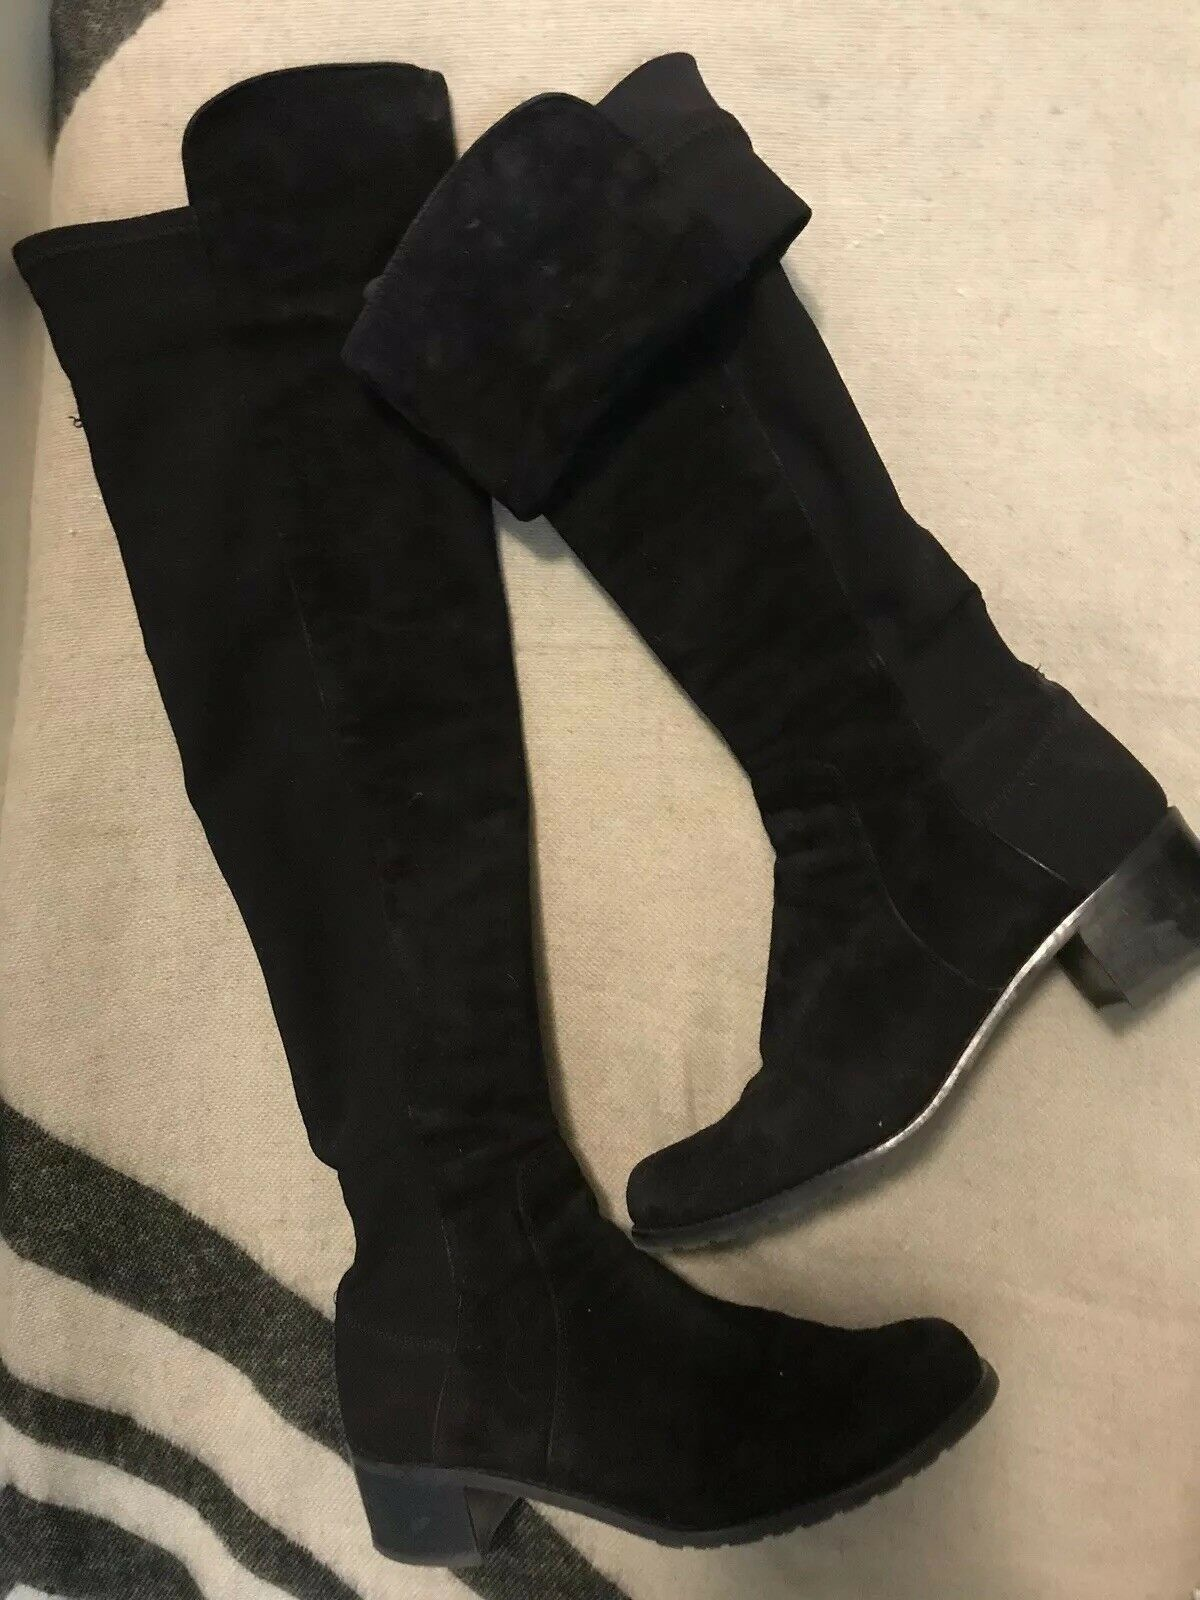 Stuart Weitzman Allserve Black Suede Over The Knee Boots Size 6.5M Msrp $695